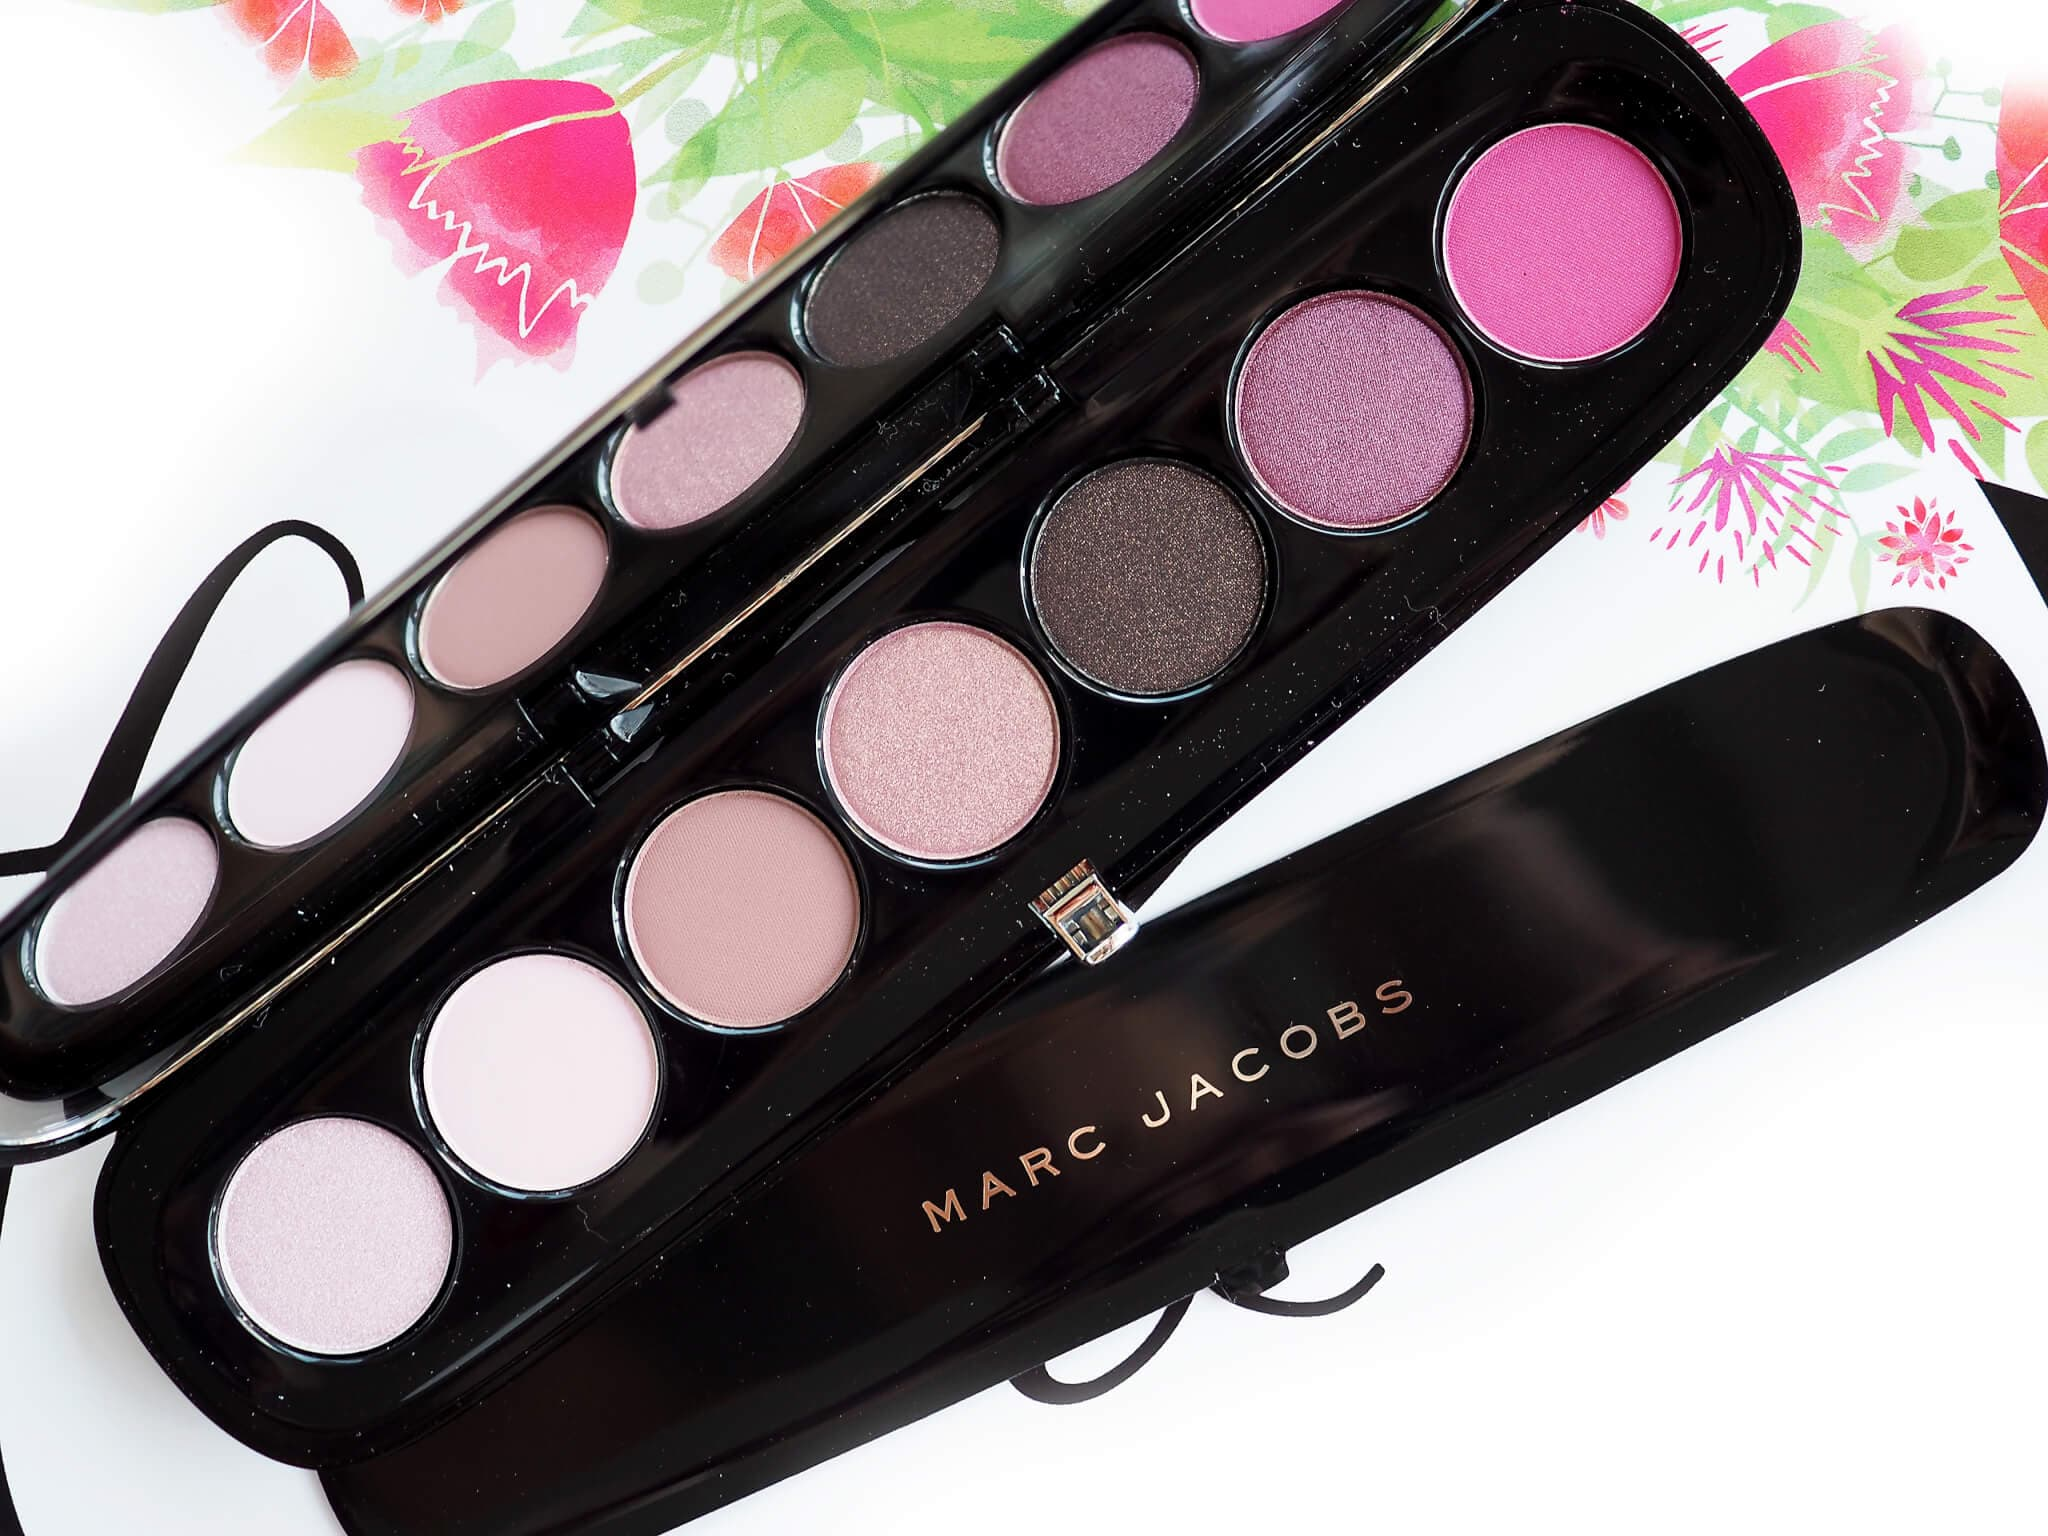 MARC JACOBS PROVOCOUTURE